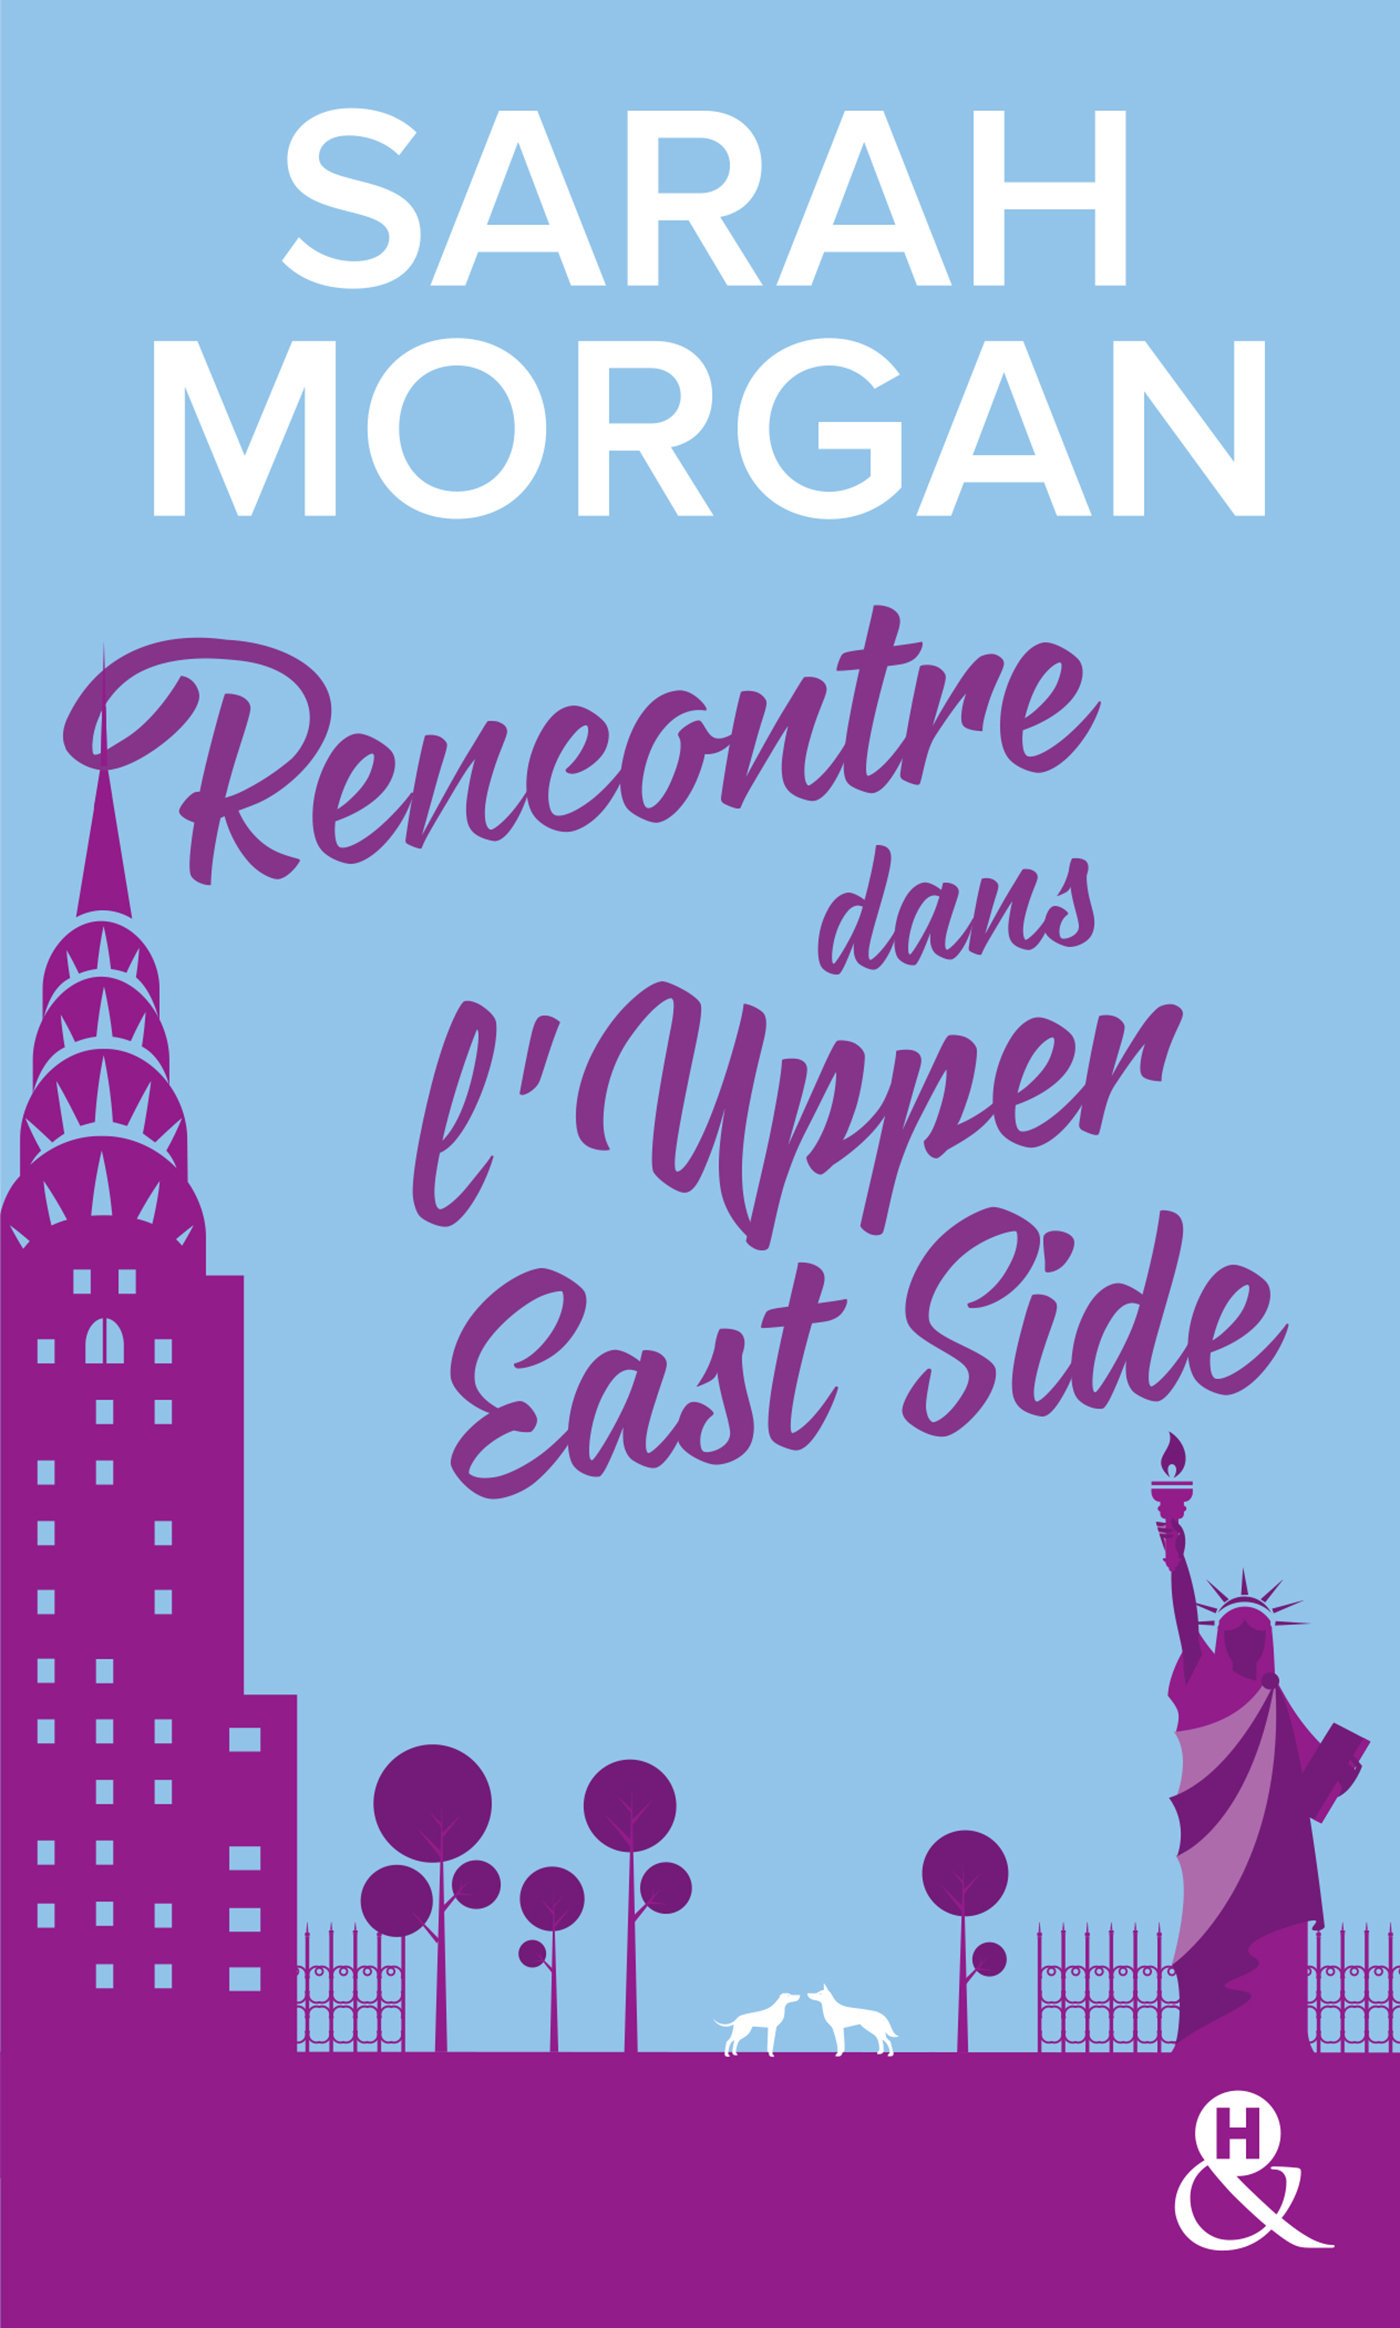 Image de couverture (Rencontre dans l'Upper East Side)